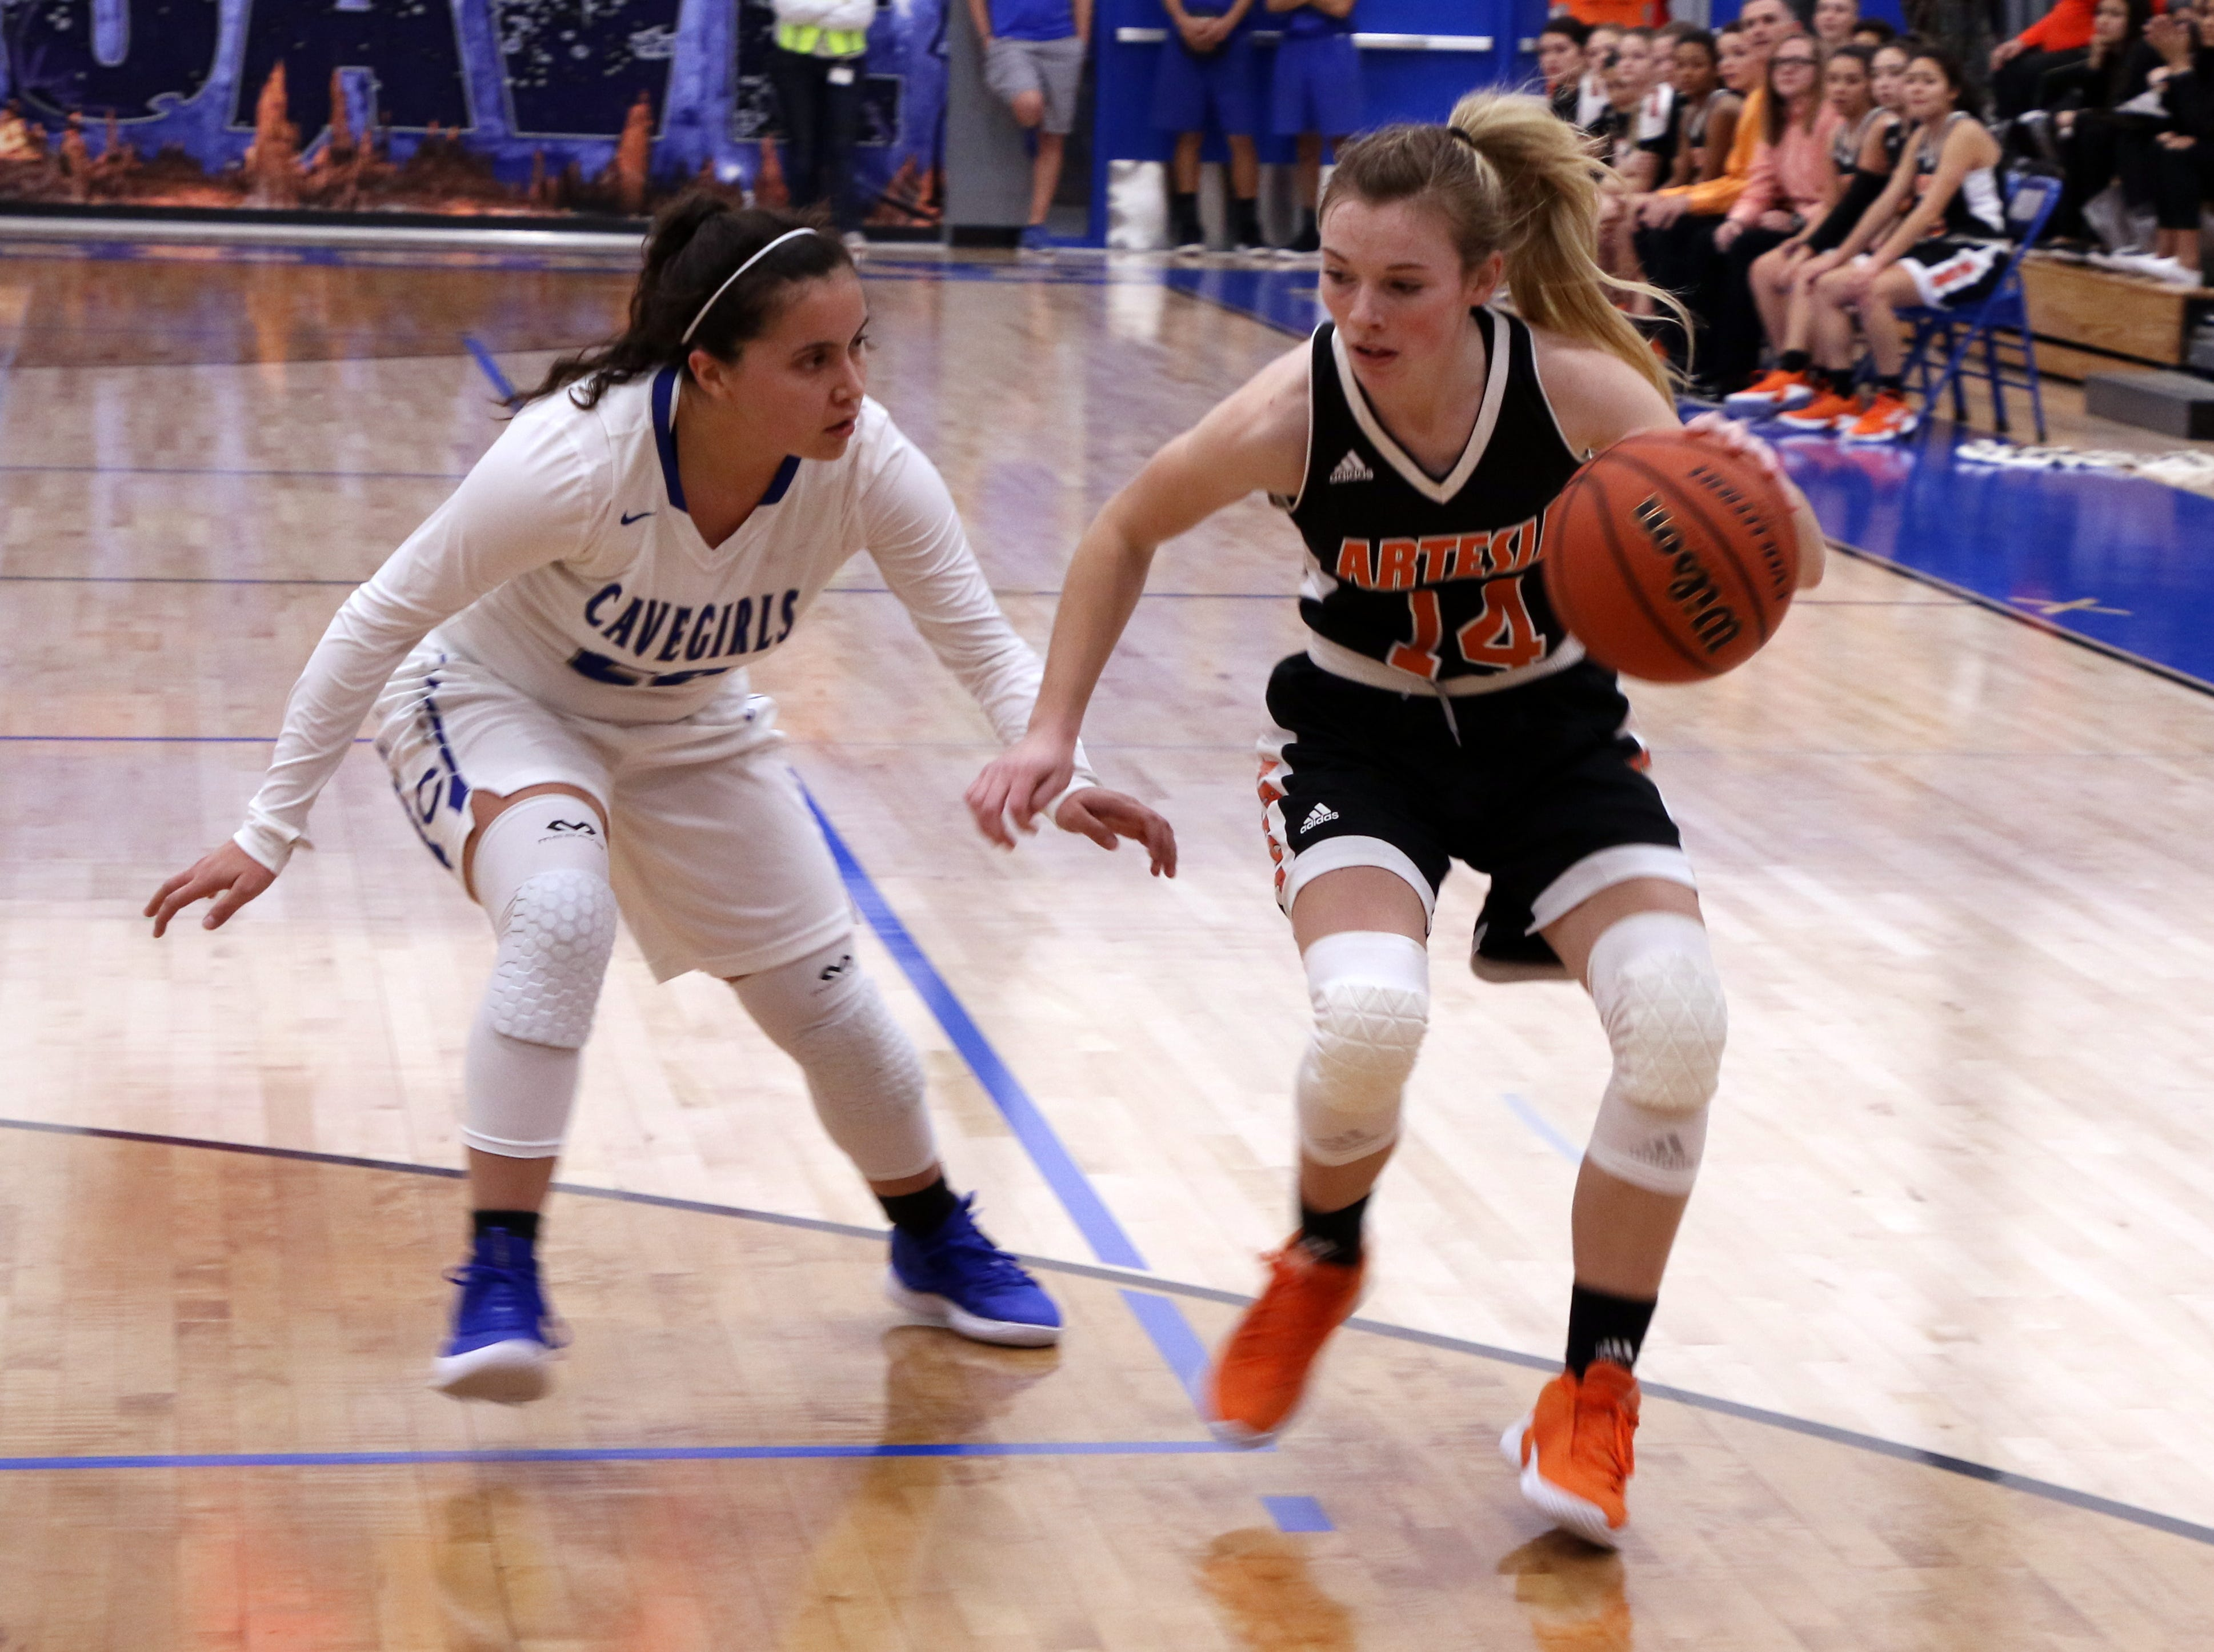 Artesia's Brehnan Davis (14) drives against Carlsbad's Nyah Chacon (22) during Tuesday's game.